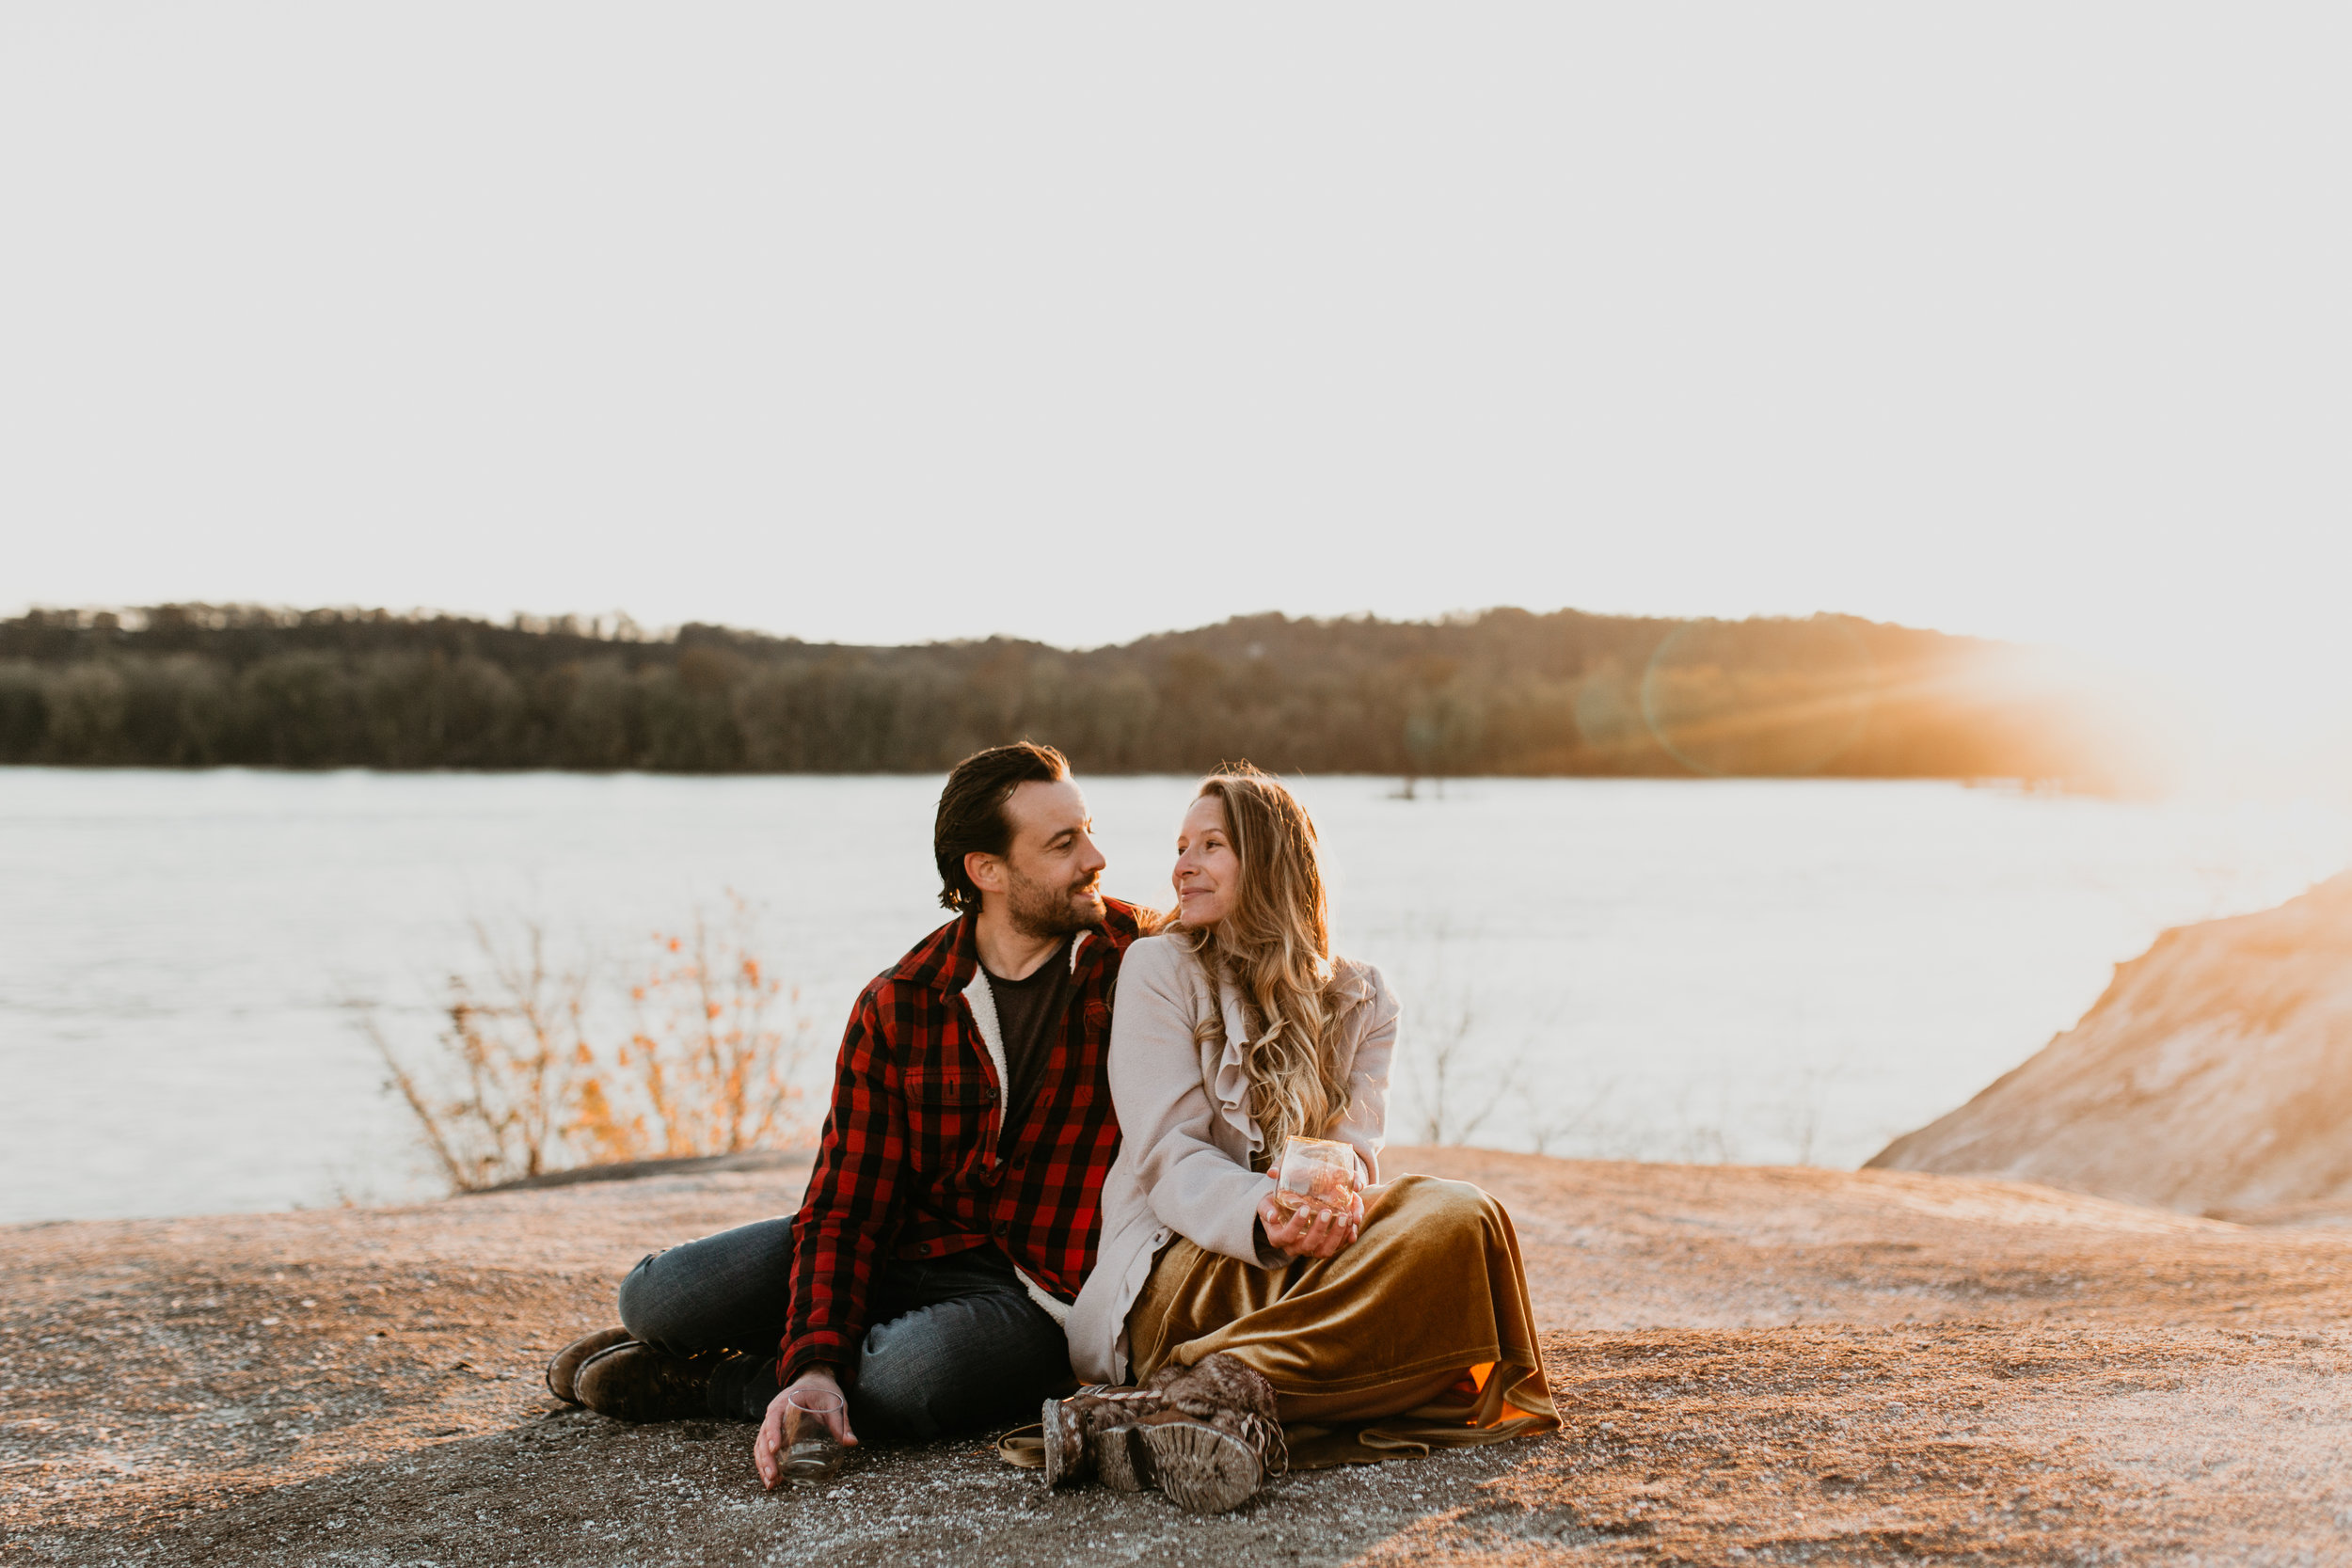 nicole-daacke-photography-white-cliffs-of-conoy-in-lancaster-pa-pennsylvania-adventure-session-adventure-elopement-photographer-engagement session-in-lancaster-pa-photographer-golden-sunset-winter-solstice-wedding-riverside-elopement-4152.jpg